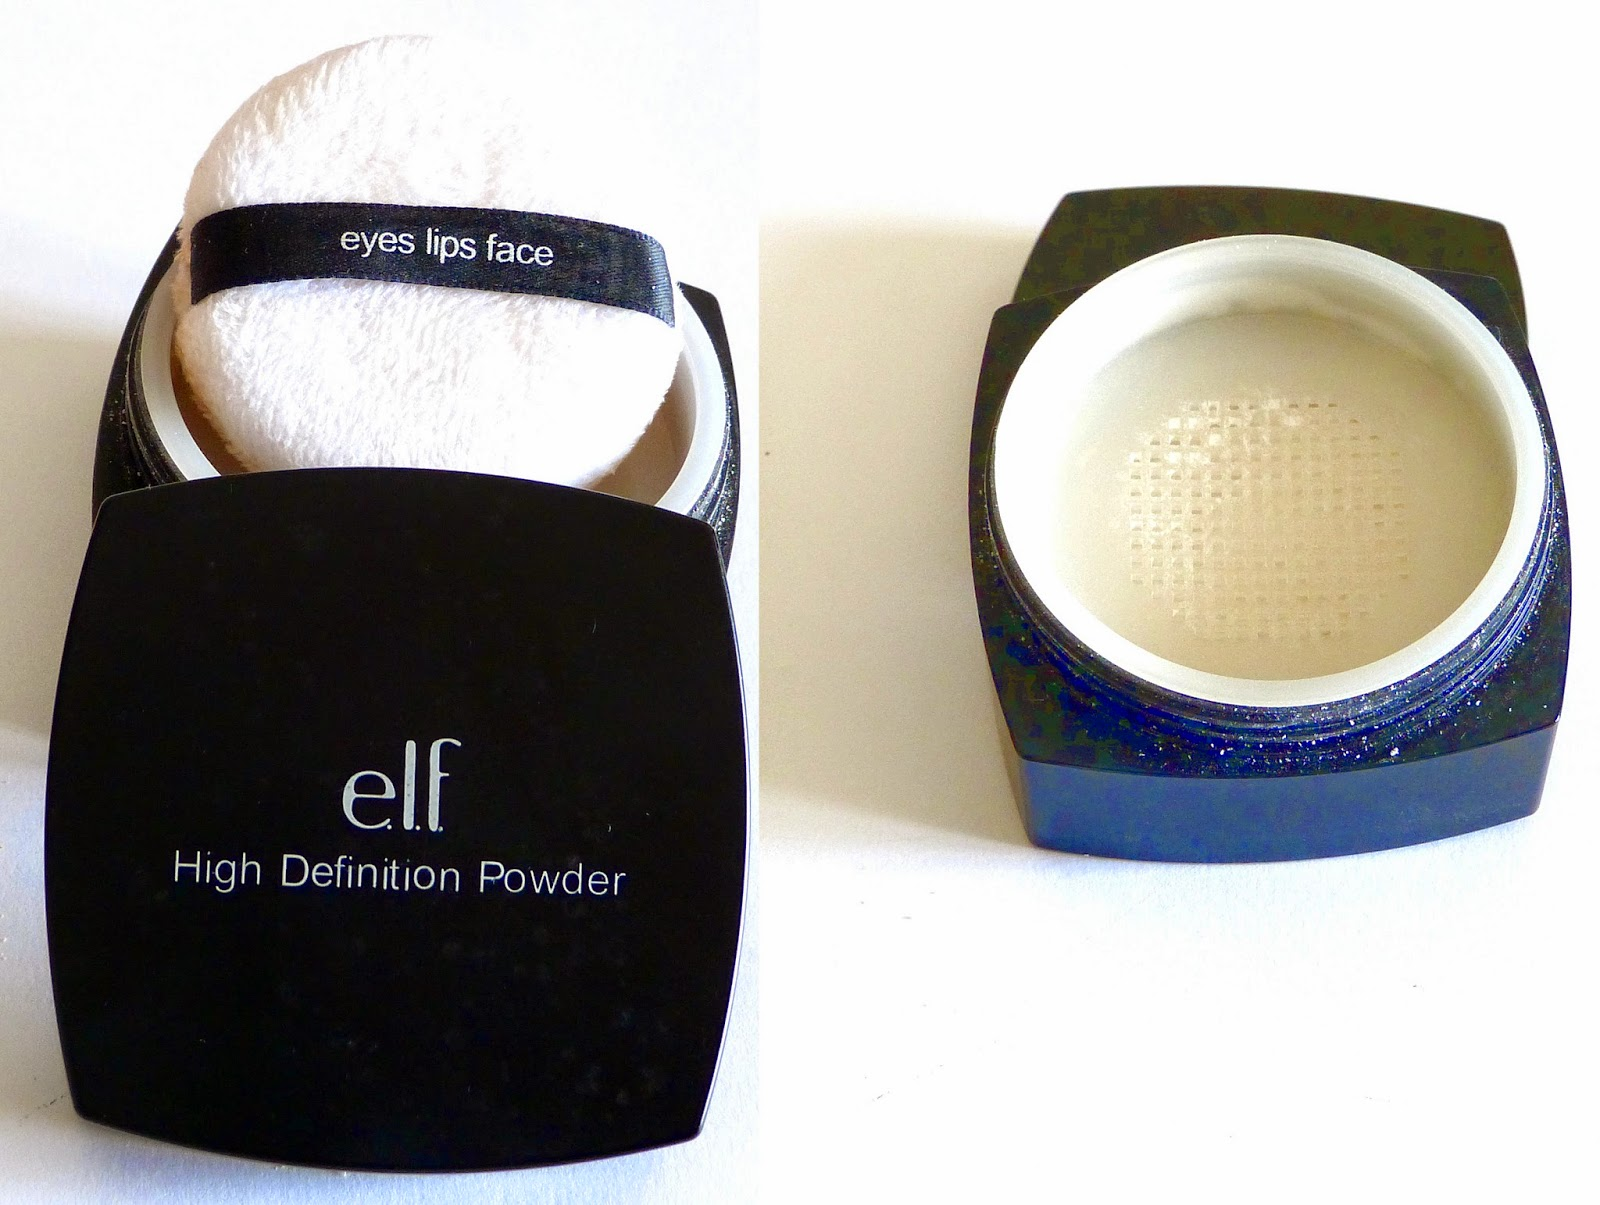 elf, High Definition Powder